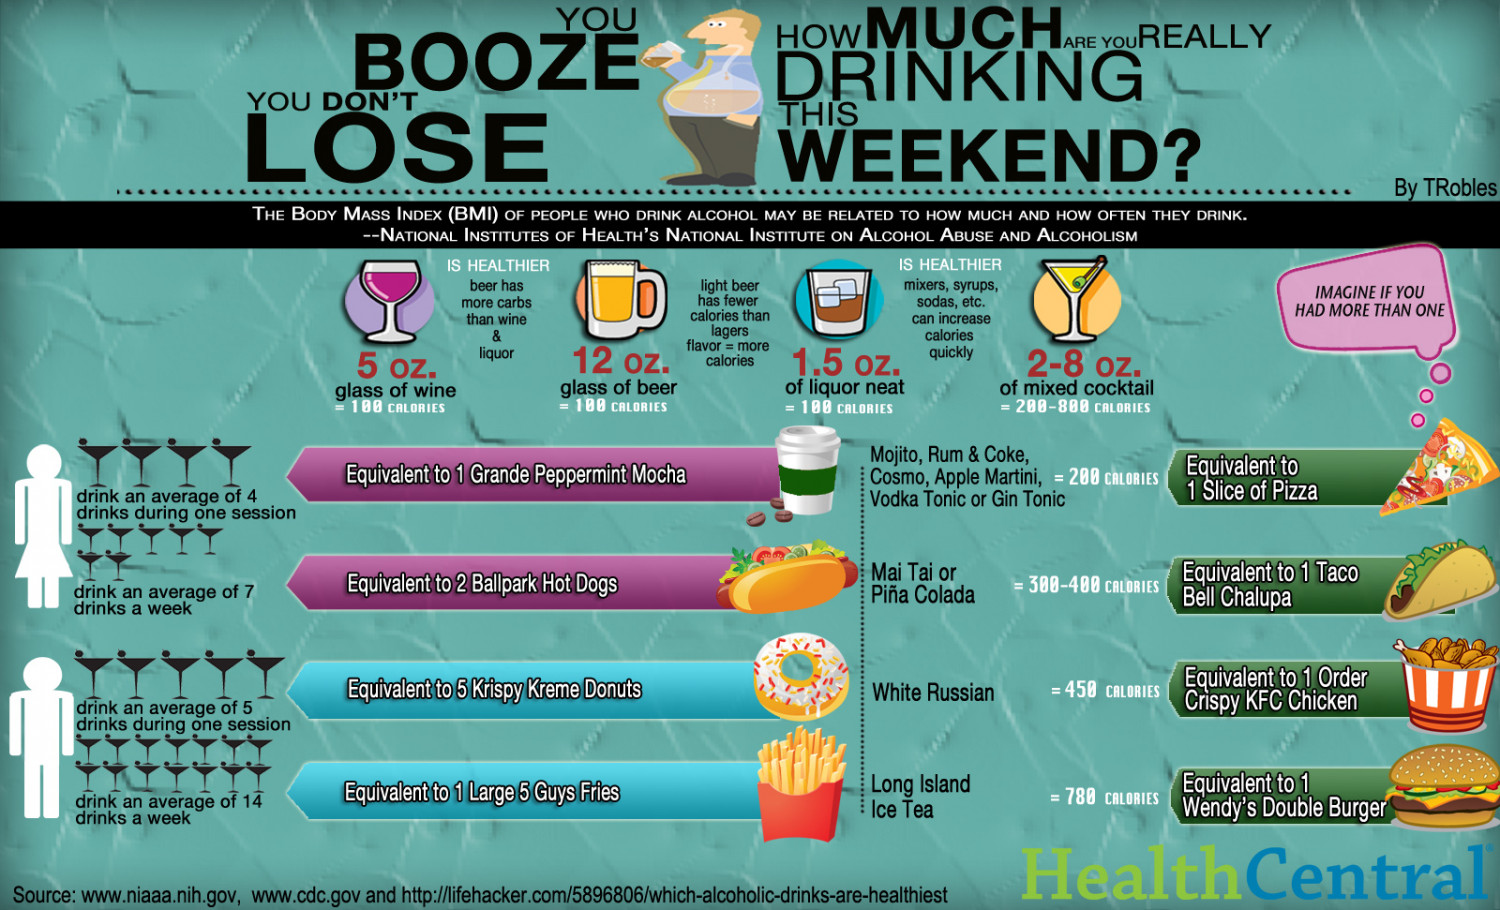 You Booze You Don't Lose Infographic